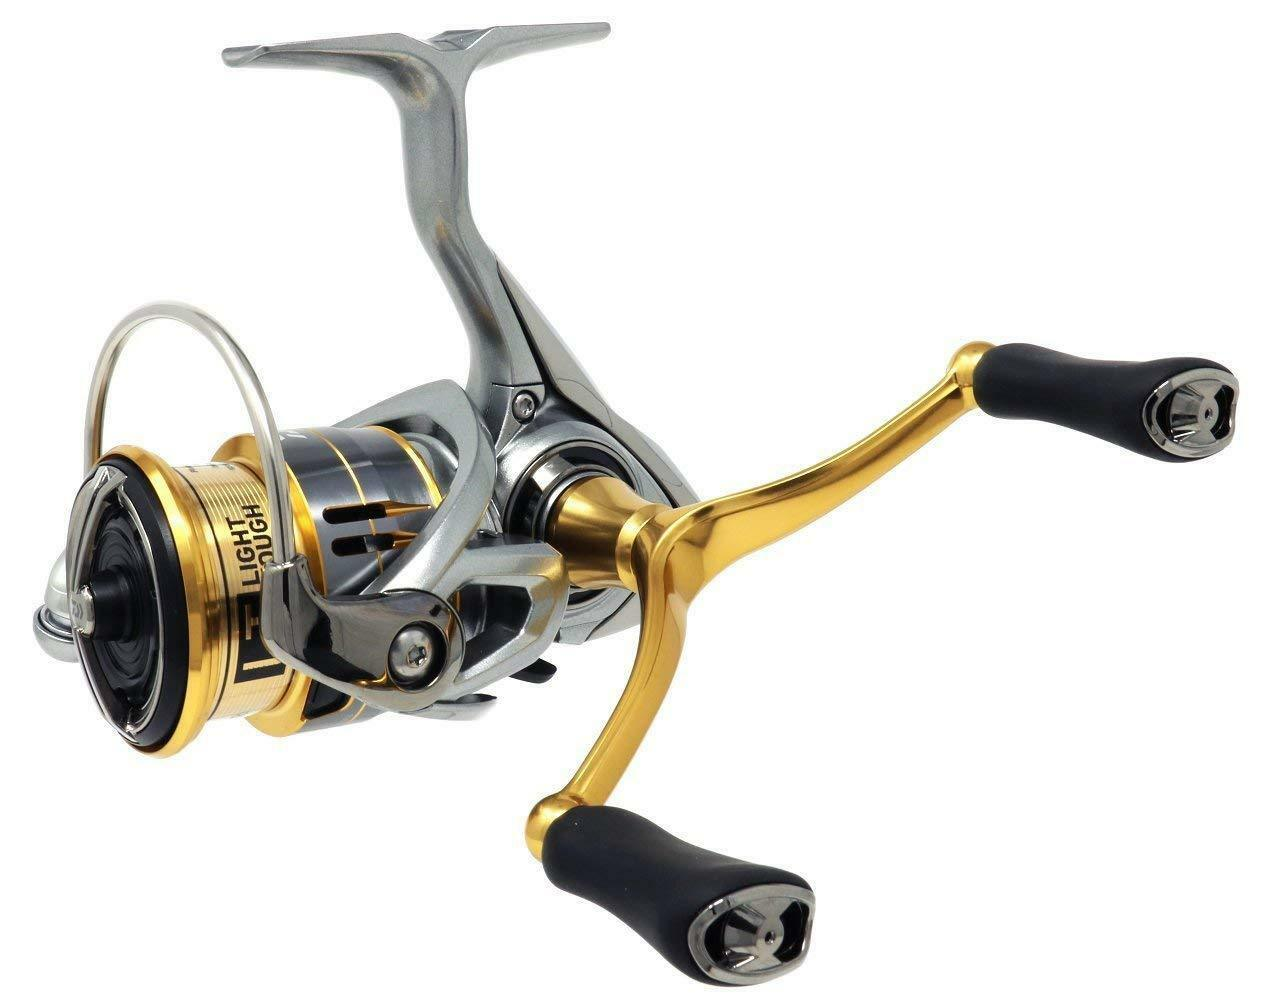 Daiwa 18 FREAMS LT2500S-DH Spinning Reel LIGHT TOUGH MAGSEELD ATD New in Box